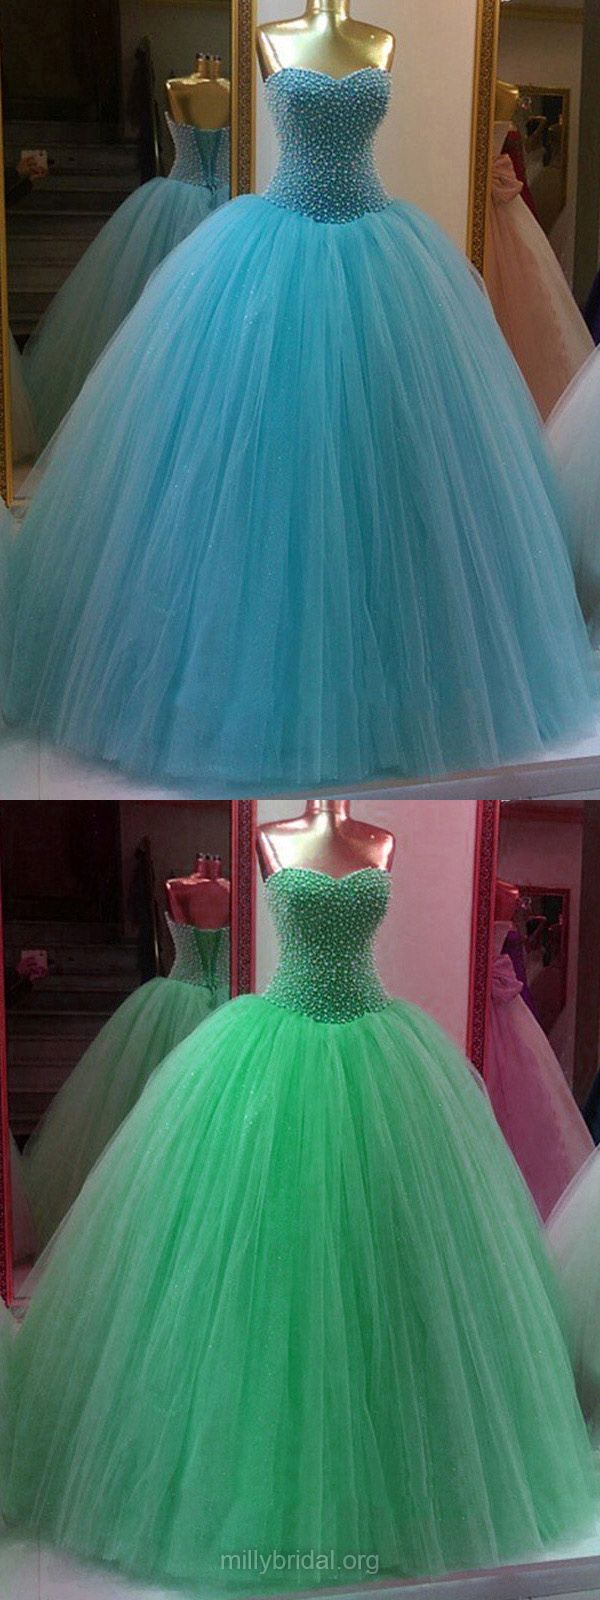 Glamorous Ball Gown Prom Dresses Sweetheart, Tulle Long Party Dresses Pearl Detailing, Lace-up Formal Prom Dresses Modest